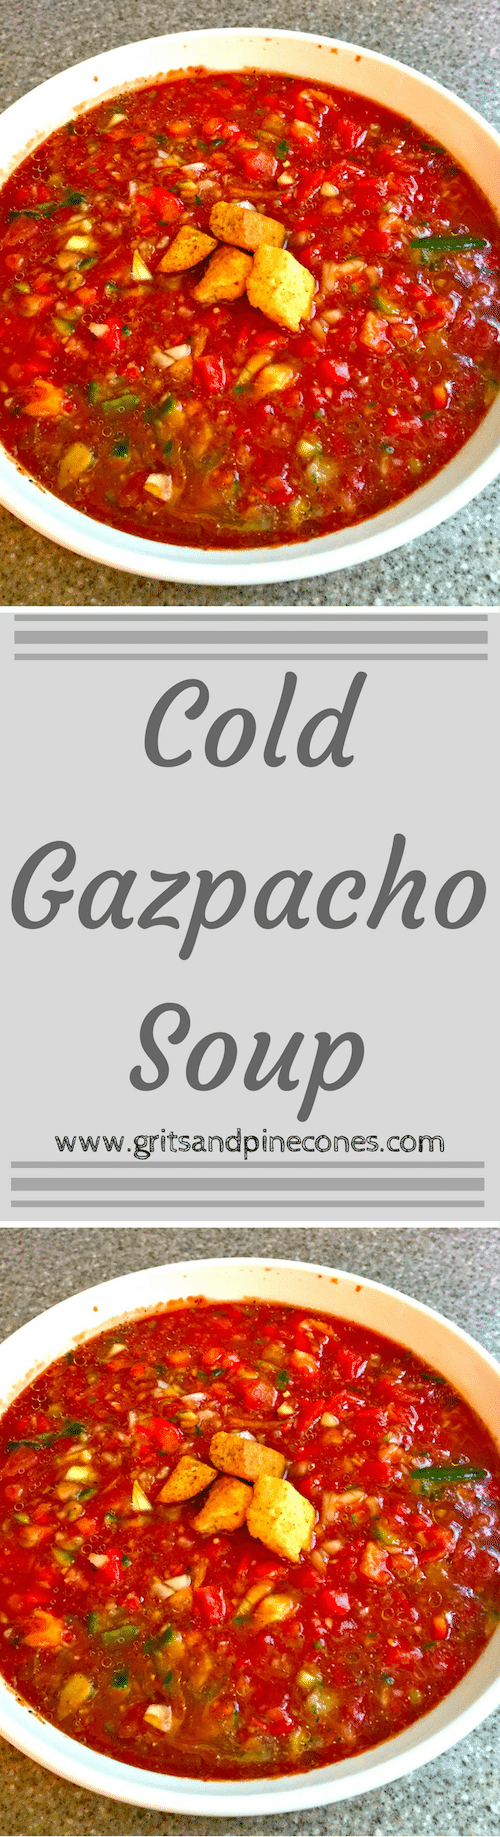 Gazpacho (pronounced gaz·pa·cho) is a Spanish-style soup made from tomatoes, and it is a delicious, no-cook, low calorie and healthy soup!